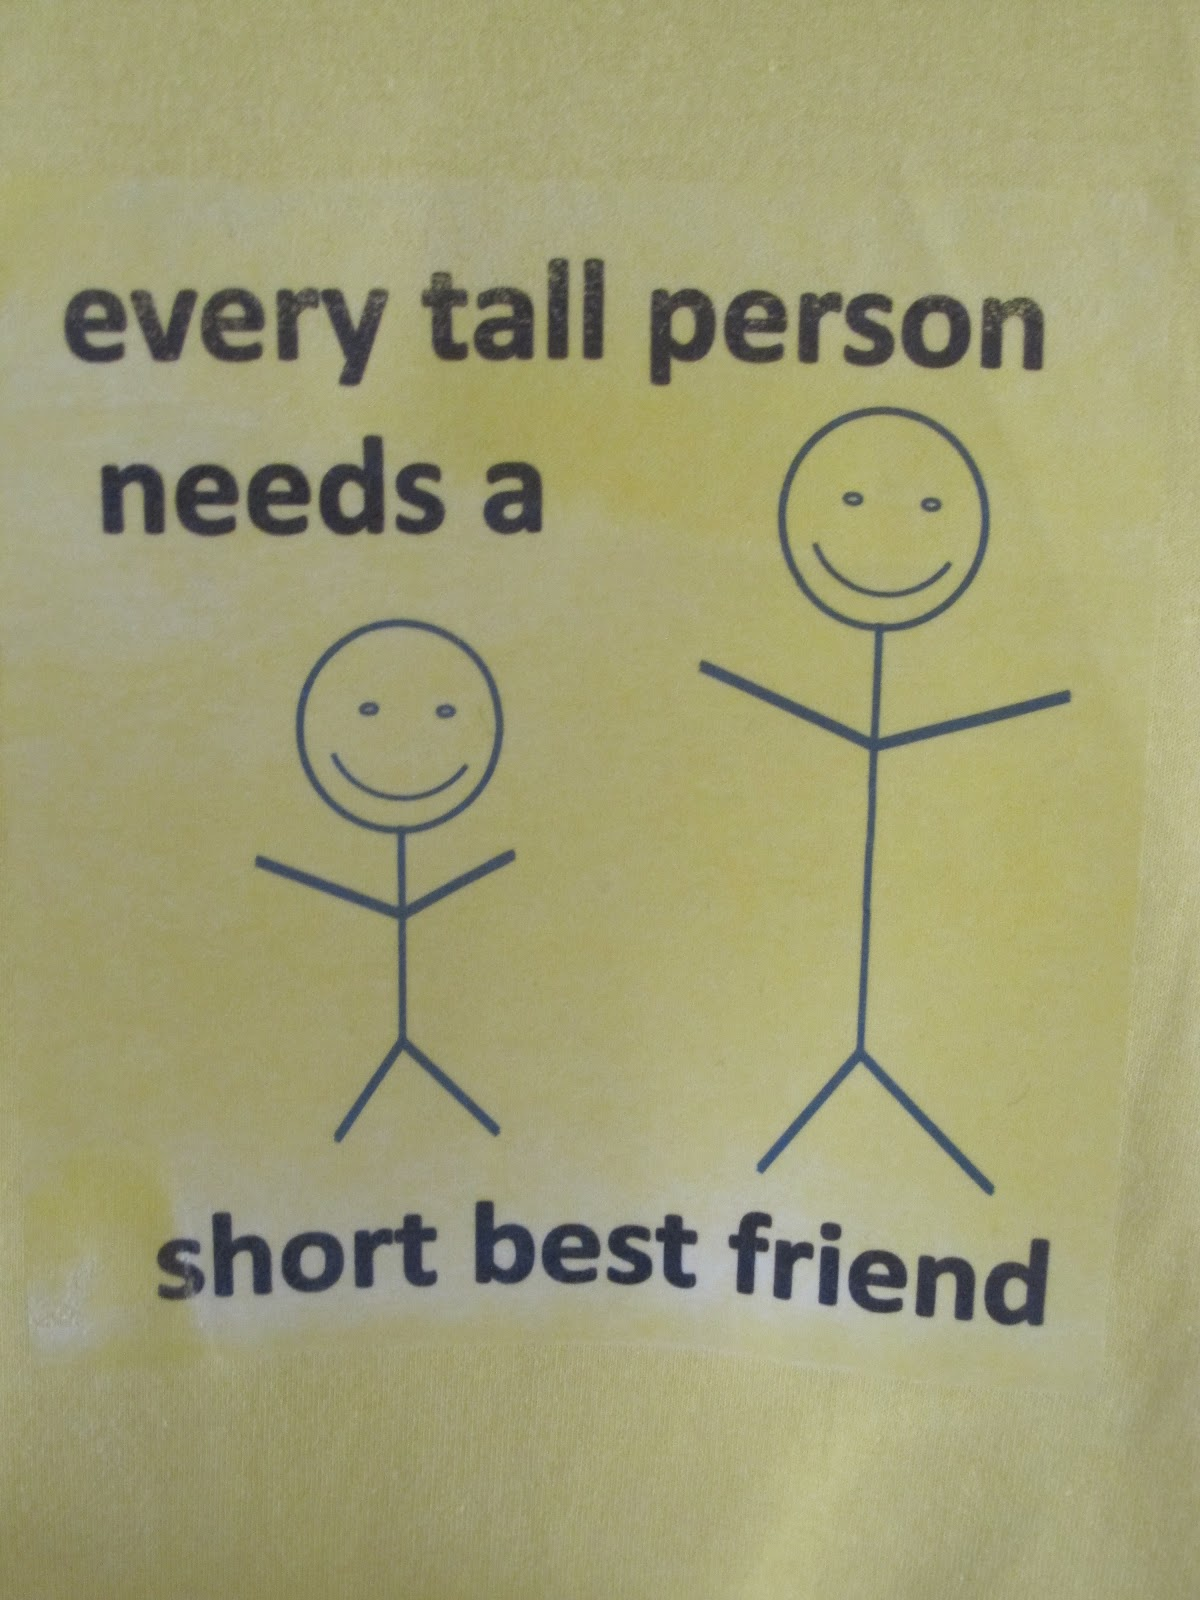 Quotes For Tall And Short Friends : Gallery for gt best friends quotes facebook